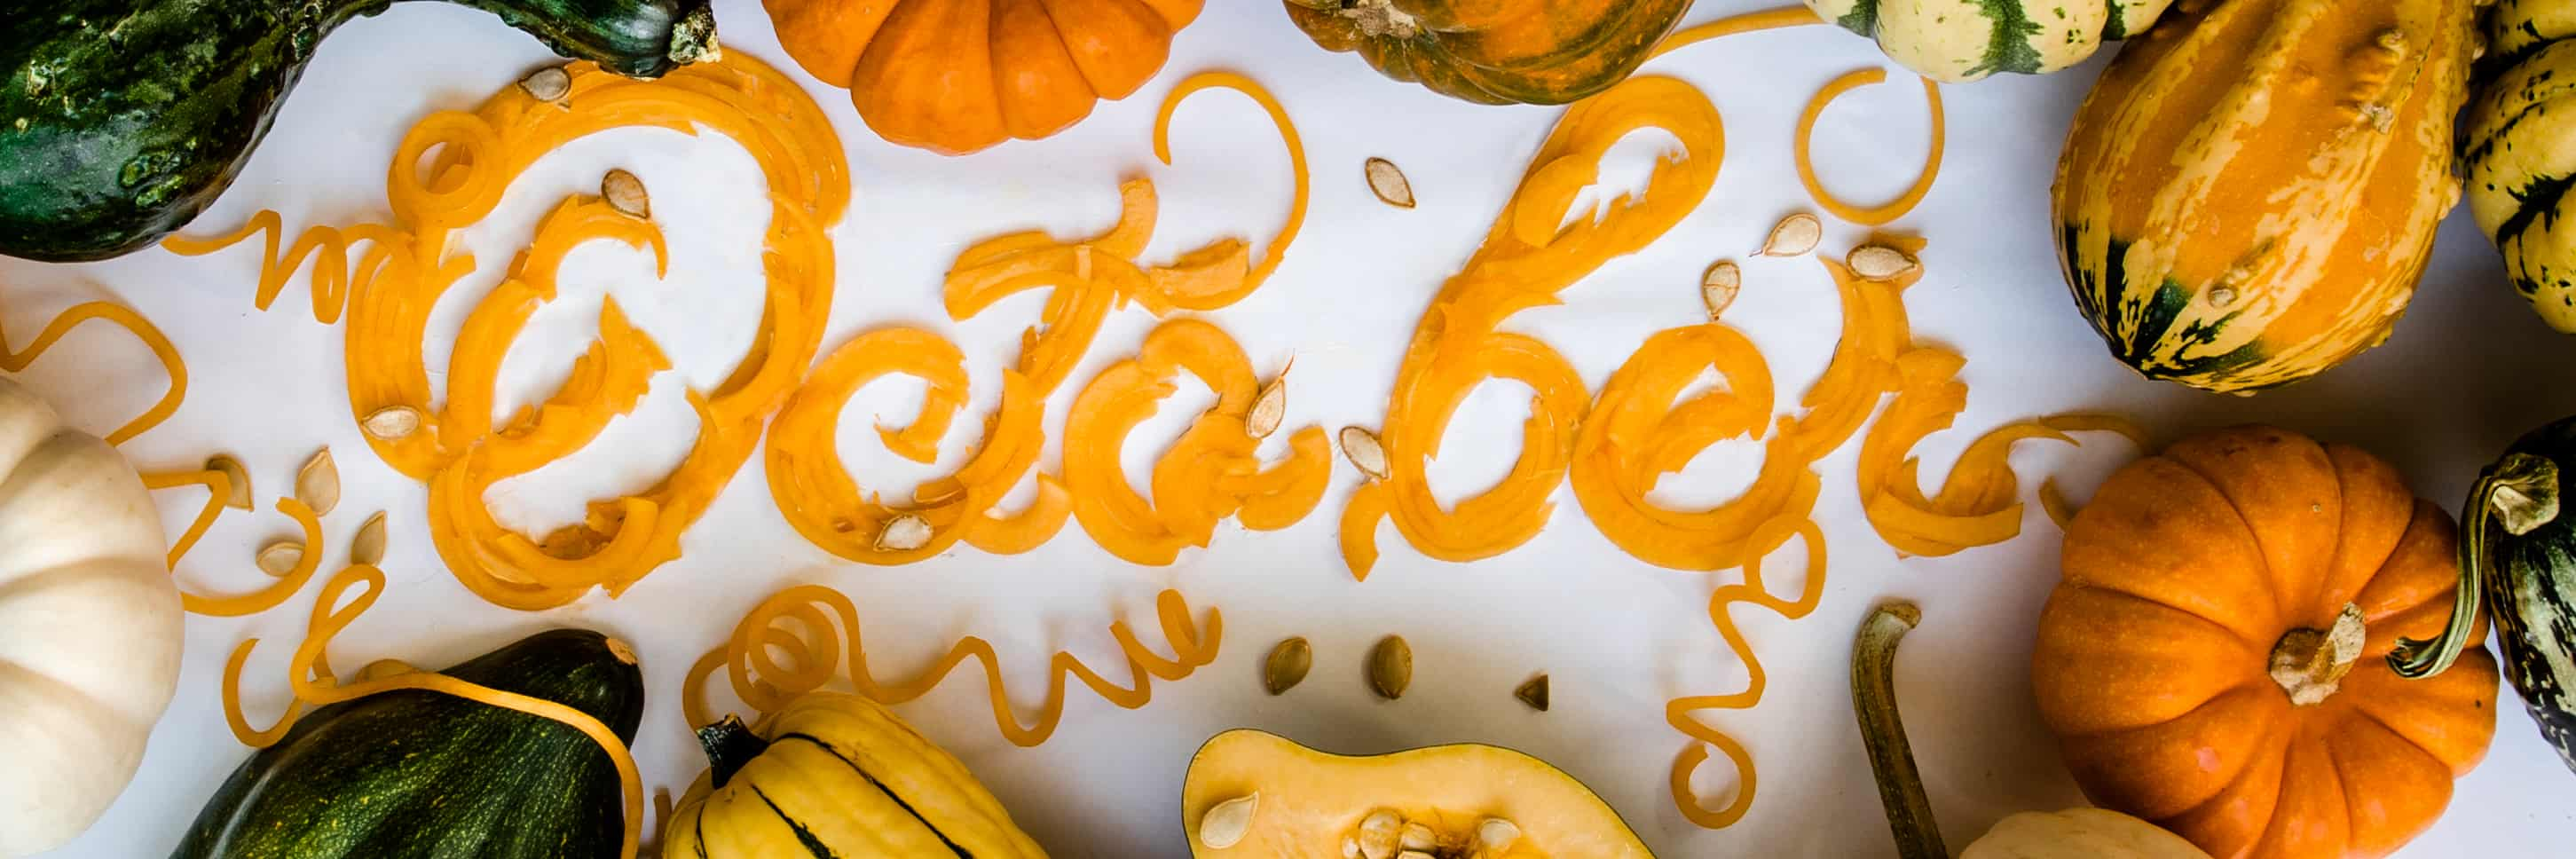 October Instagram banner made from squash